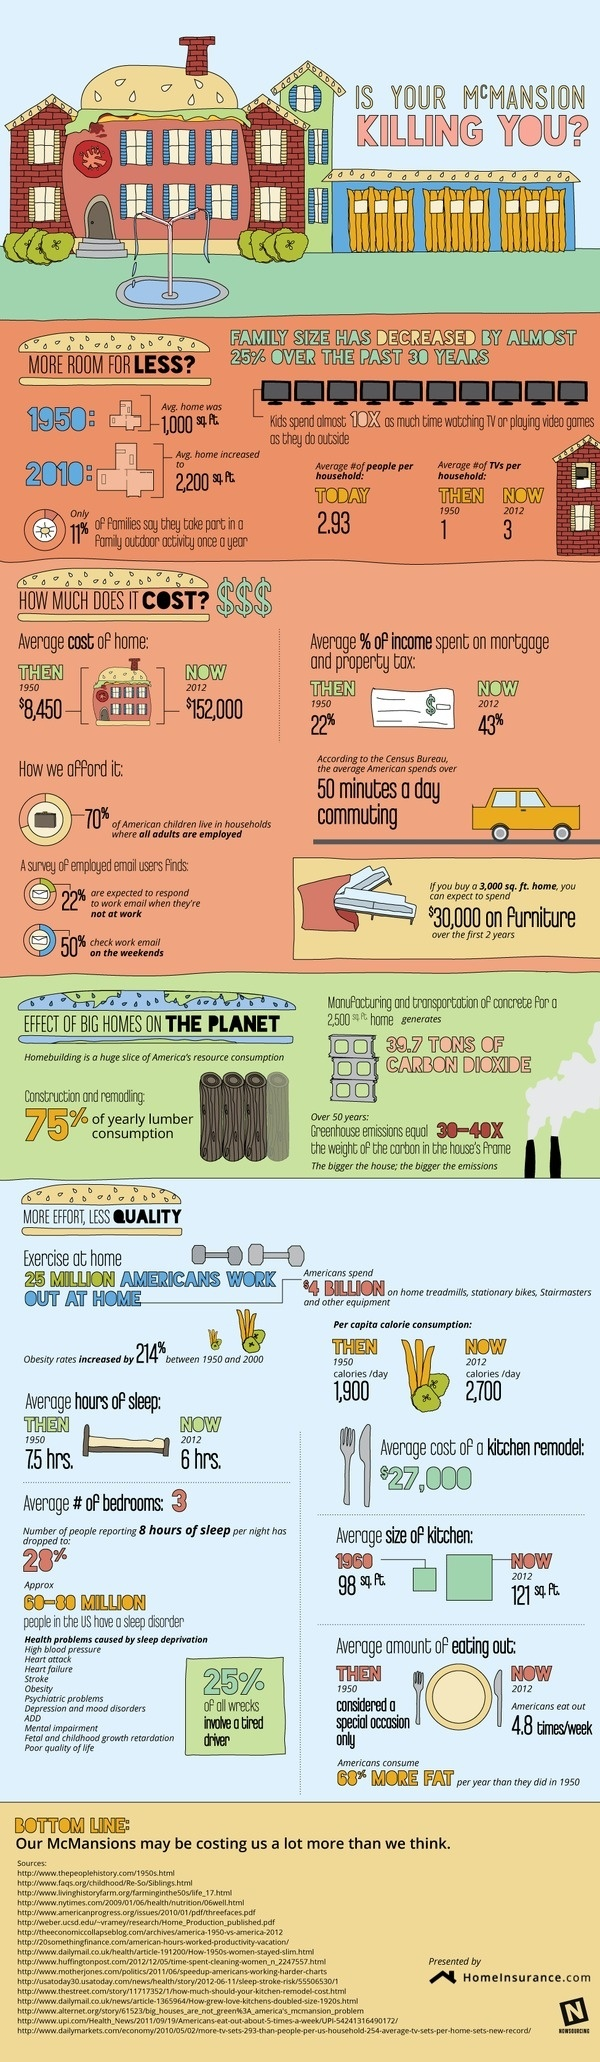 Is Your McMansion Killing You? #infographic